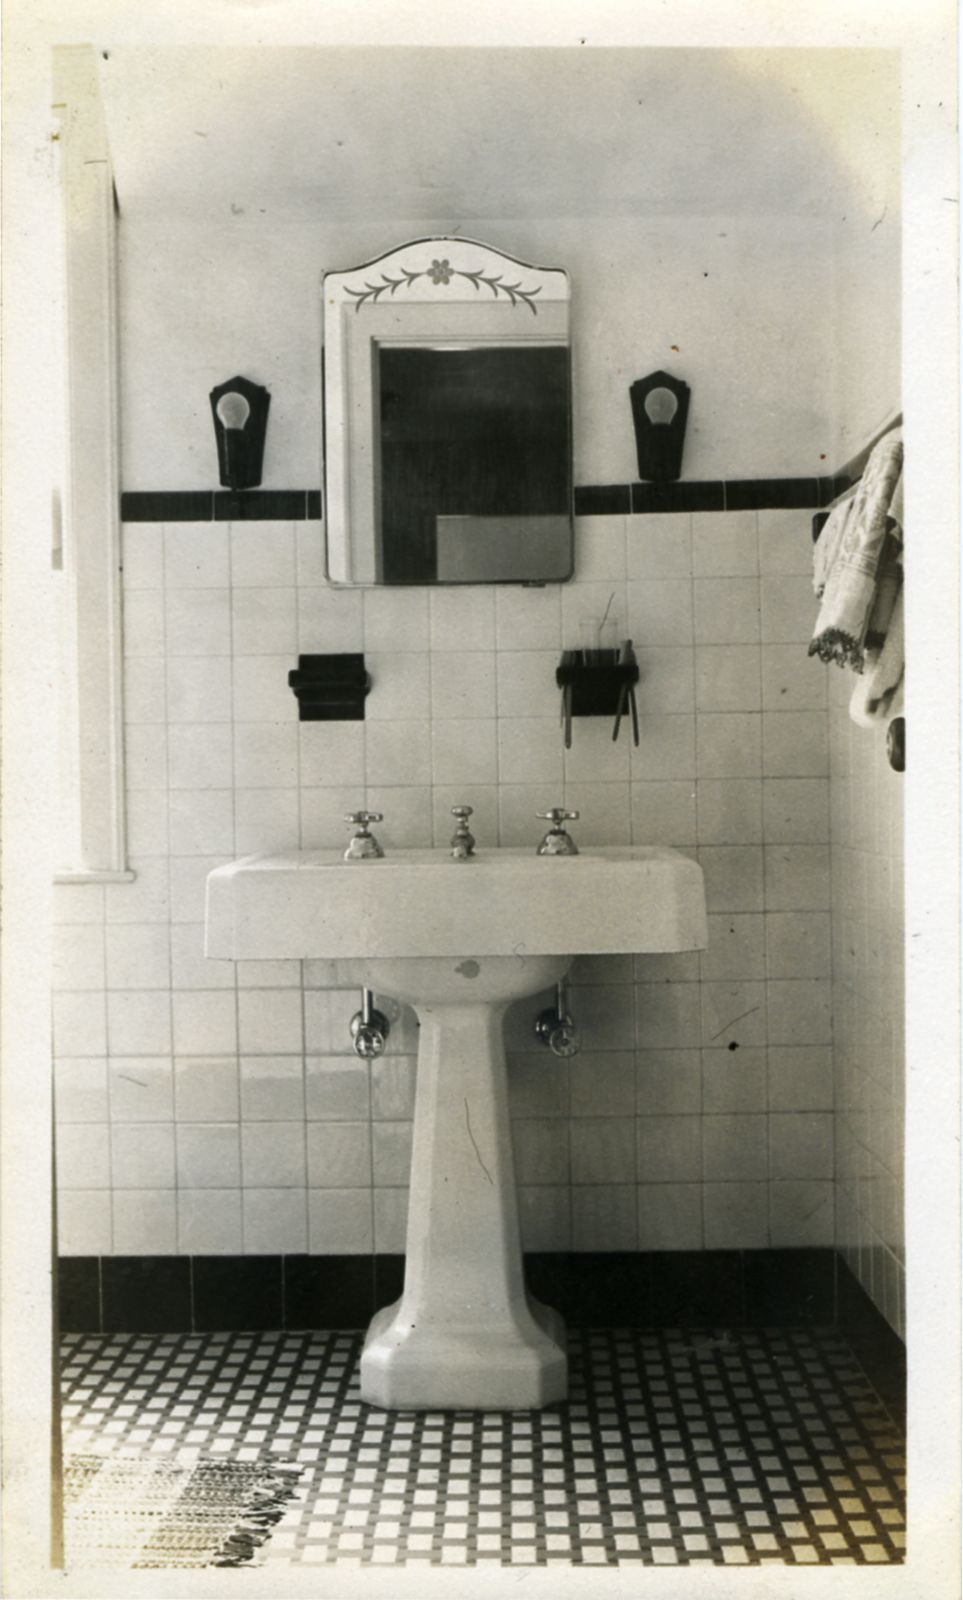 7 Ways to Make Your Small Bathroom Bigger on a Small Budget | 1930s Bathroom Designs For S on bathroom tile designs from 1930, decorating styles 1930 s, tile desgins 1930 s,